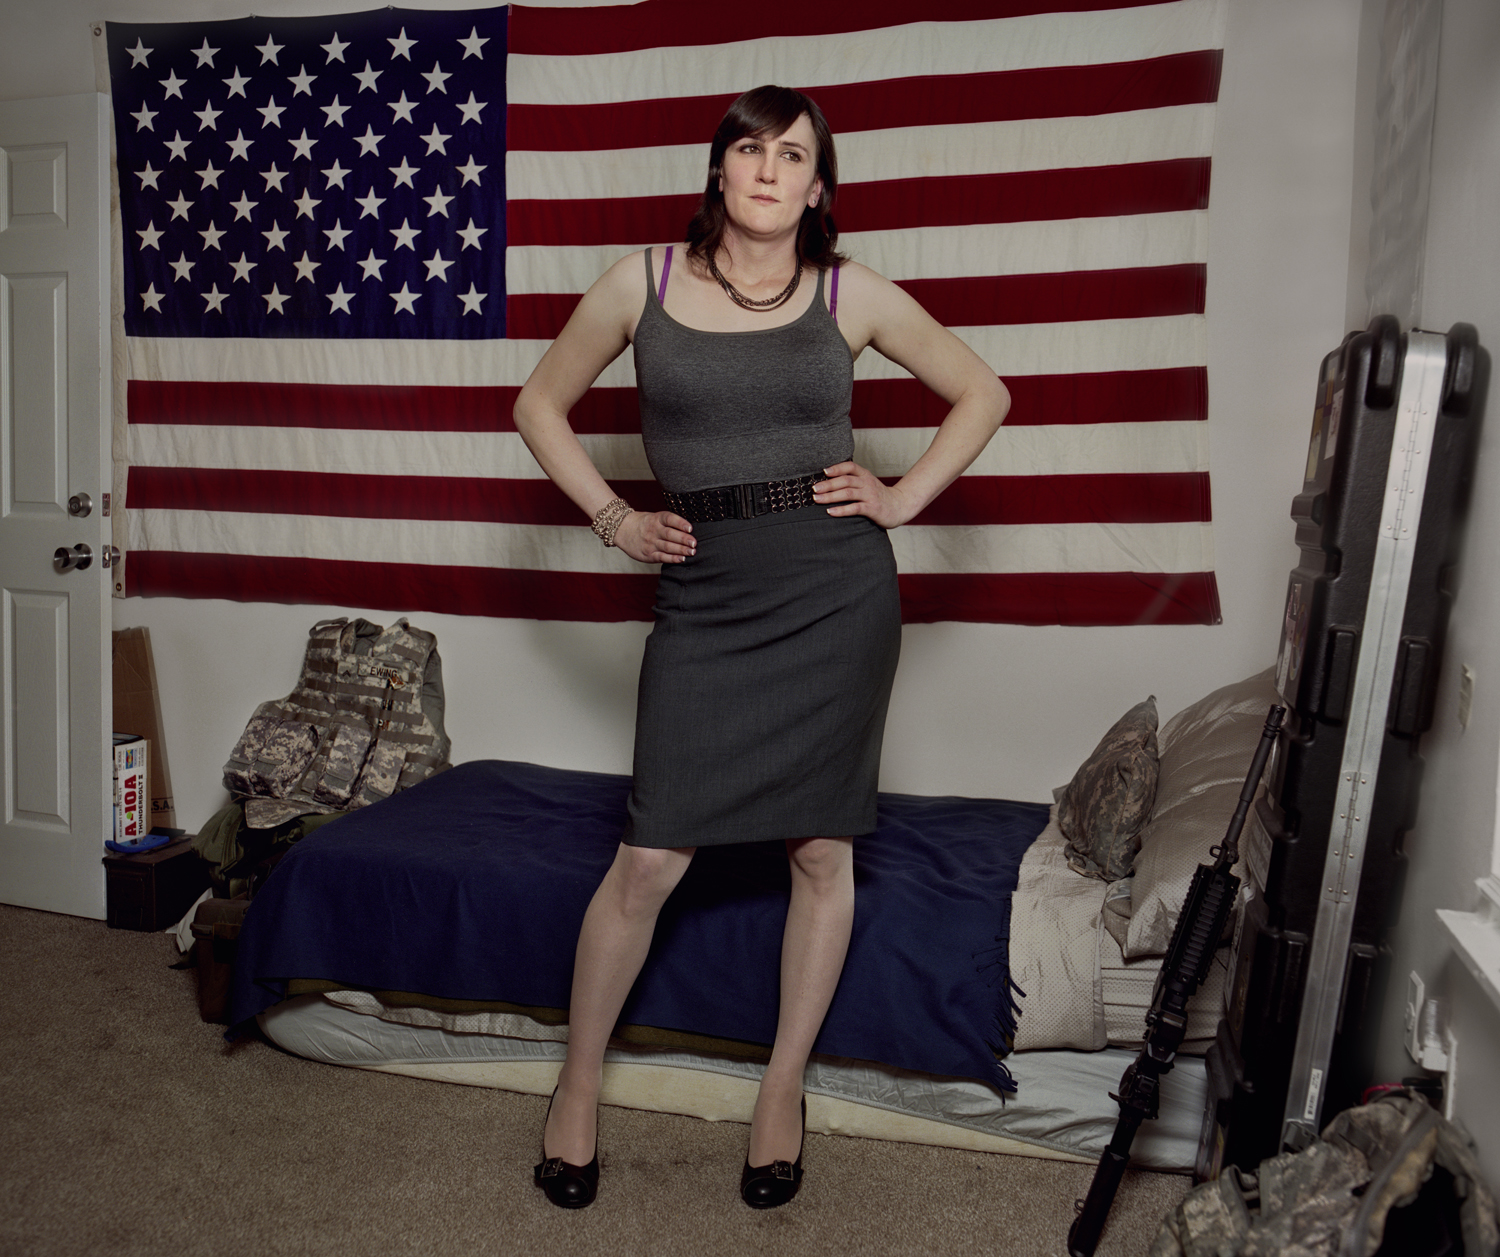 <strong>Jamie Ewing</strong>